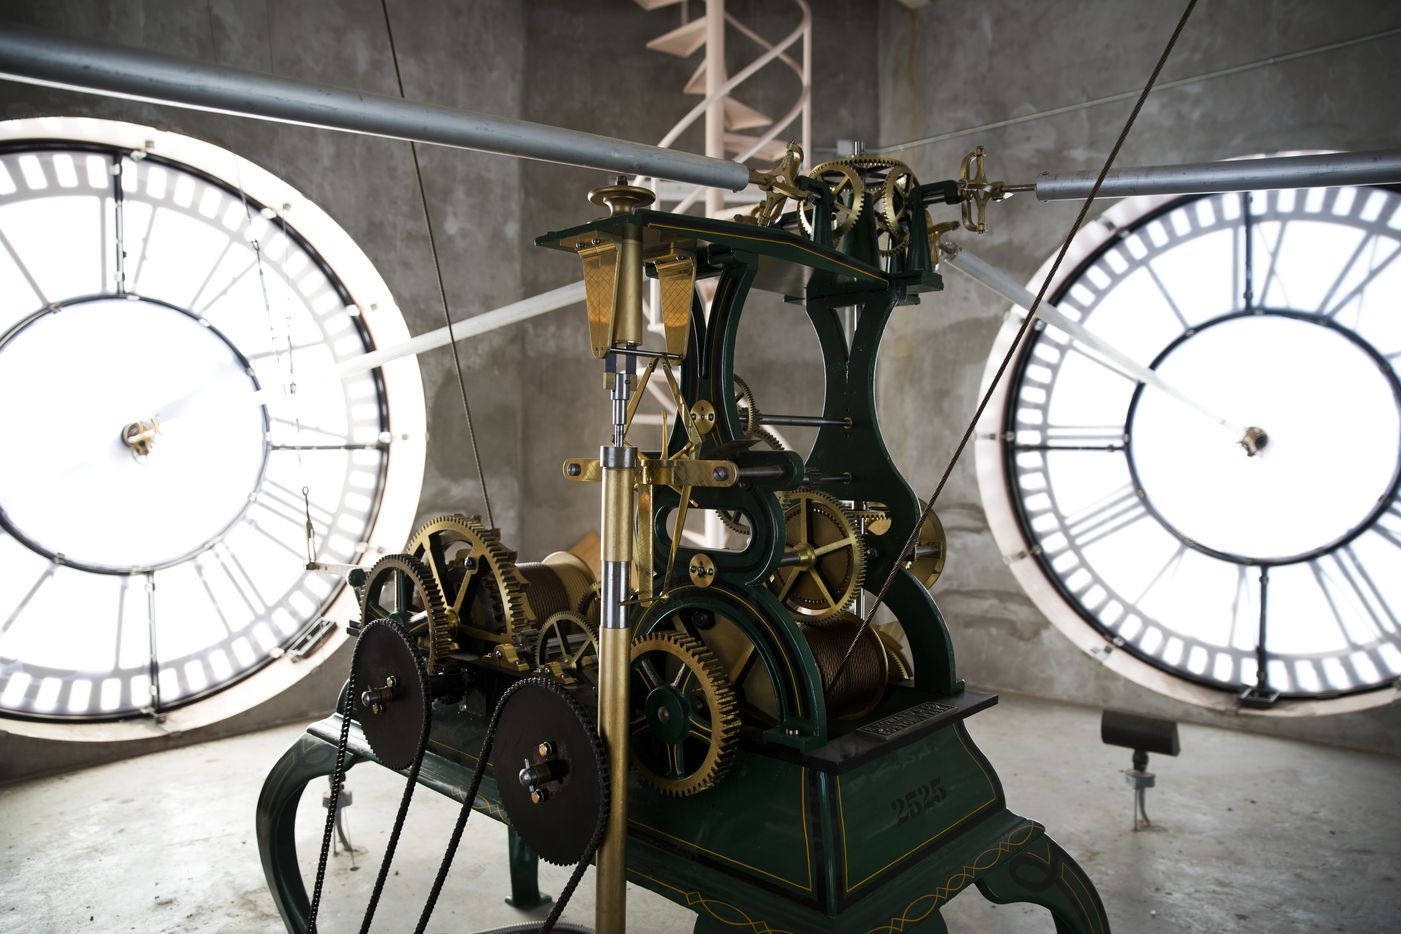 Before moving the clock forward, Roeser will take apart its motor to clean and oil all the parts.